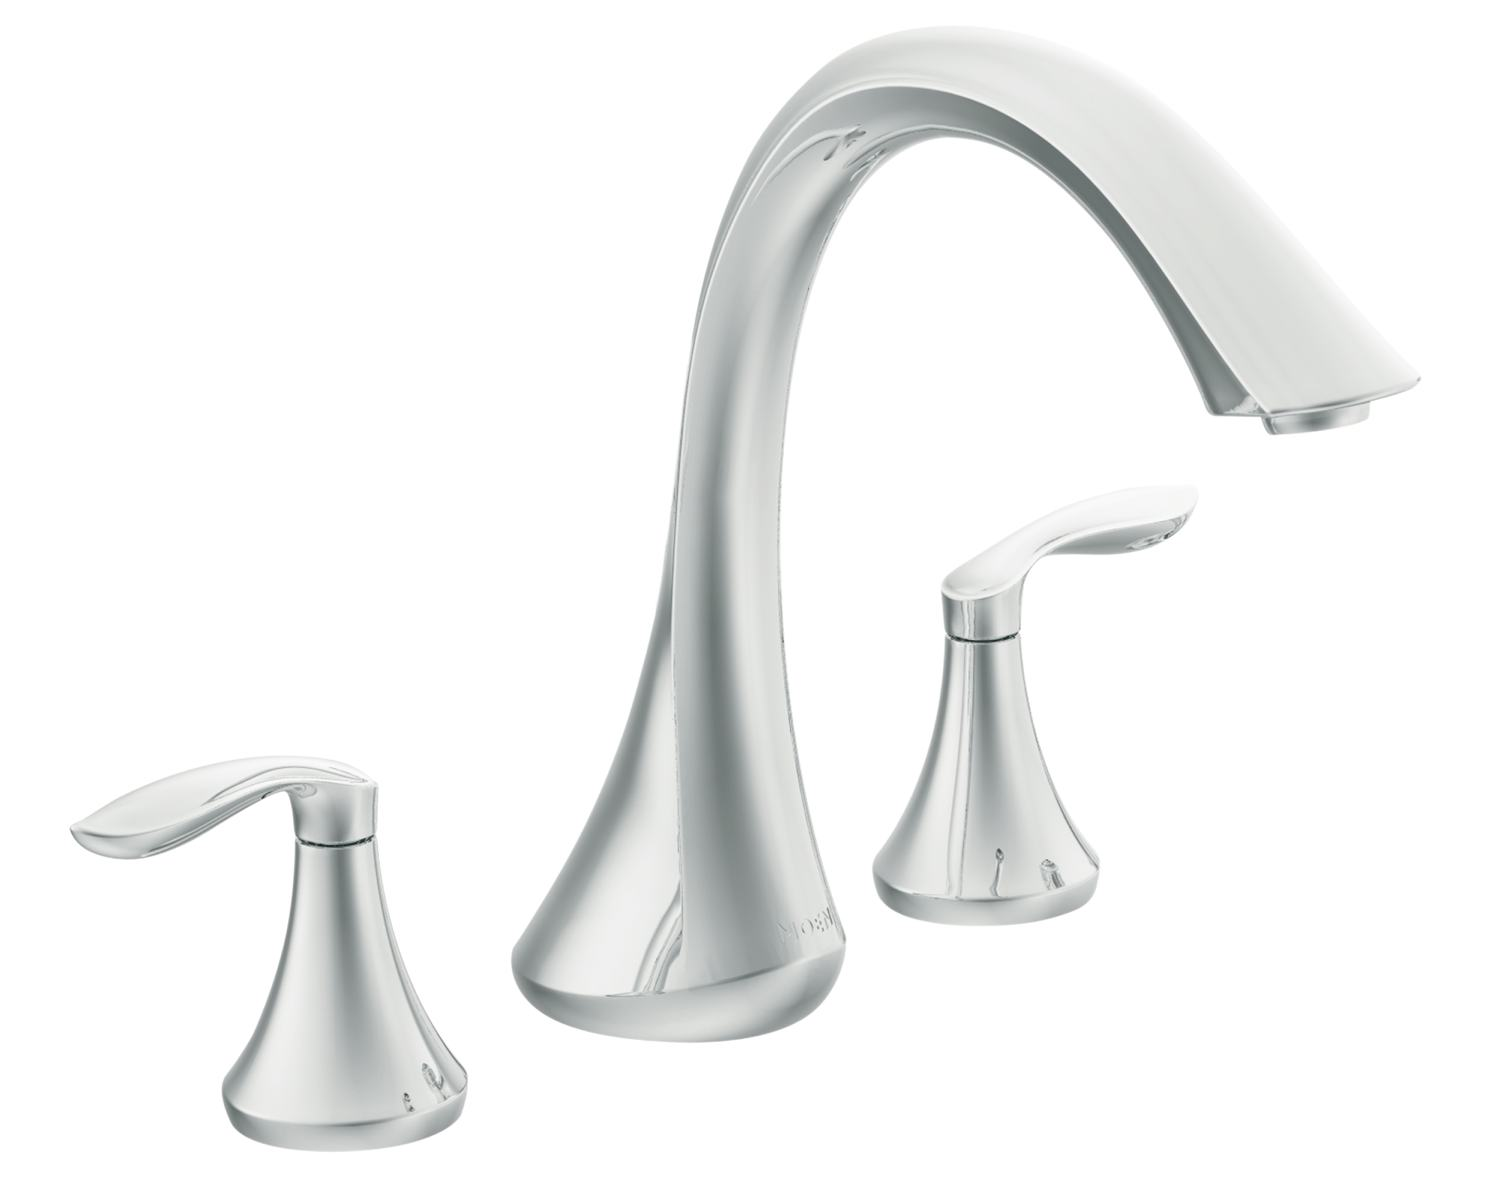 Moen T943 Eva Two Handle High Arc Roman Tub Faucet Without Valve Chrome Ba